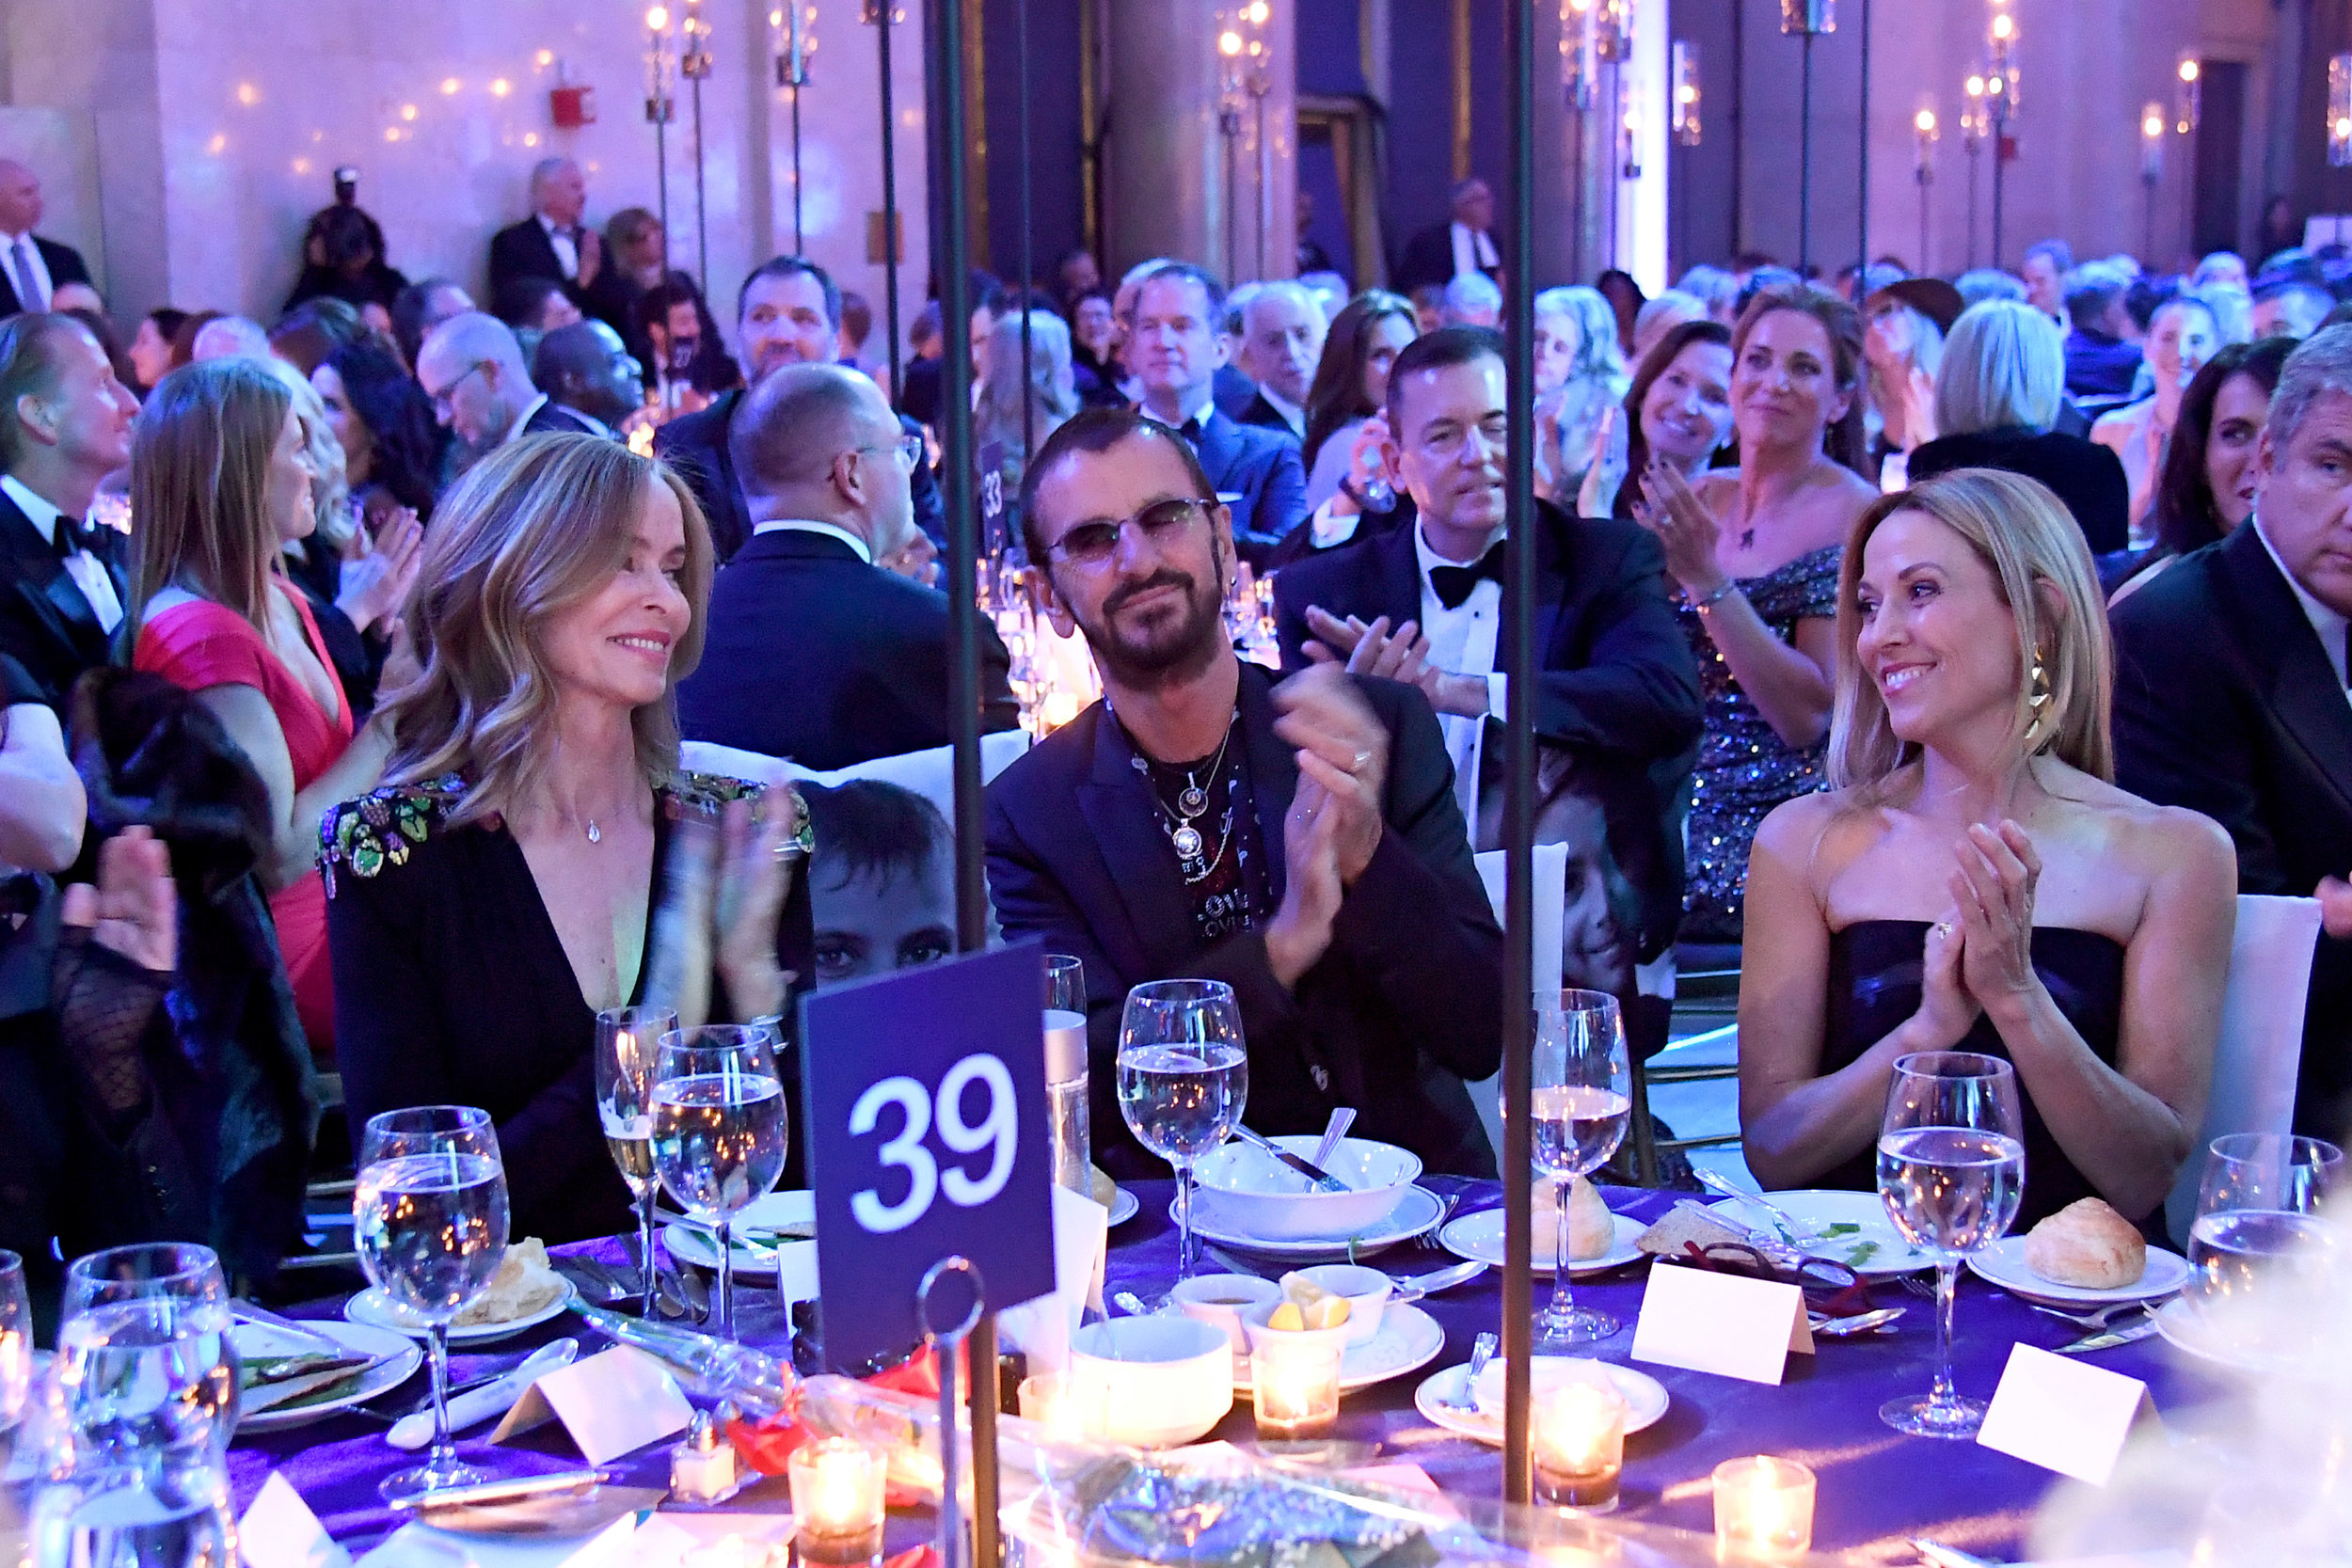 NEW YORK, NY - NOVEMBER 27: (L-R) Barbara Starkey, Honoree Sir Ringo Starr, and Sheryl Crow attend the 14th Annual UNICEF Snowflake Ball 2018 on November 27, 2018 in New York City. (Photo by Nicholas Hunt/Getty Images for UNICEF)